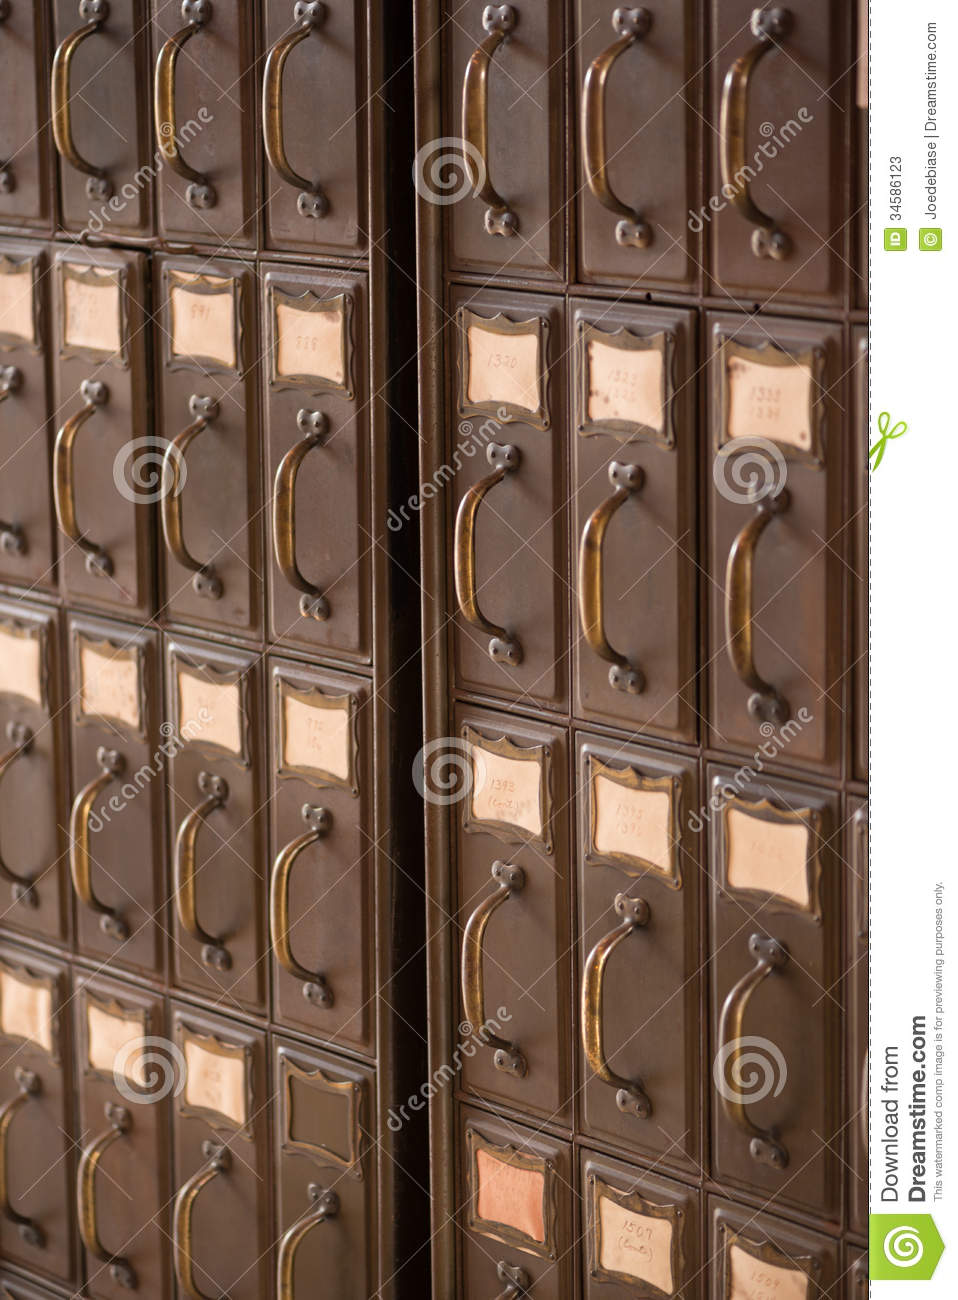 Perfect Vintage File Cabinet By Joedebiase, Via Dreamstime | Cabinetry | Pinterest  | Vintage File Cabinet, Vintage Drawers And Drawers